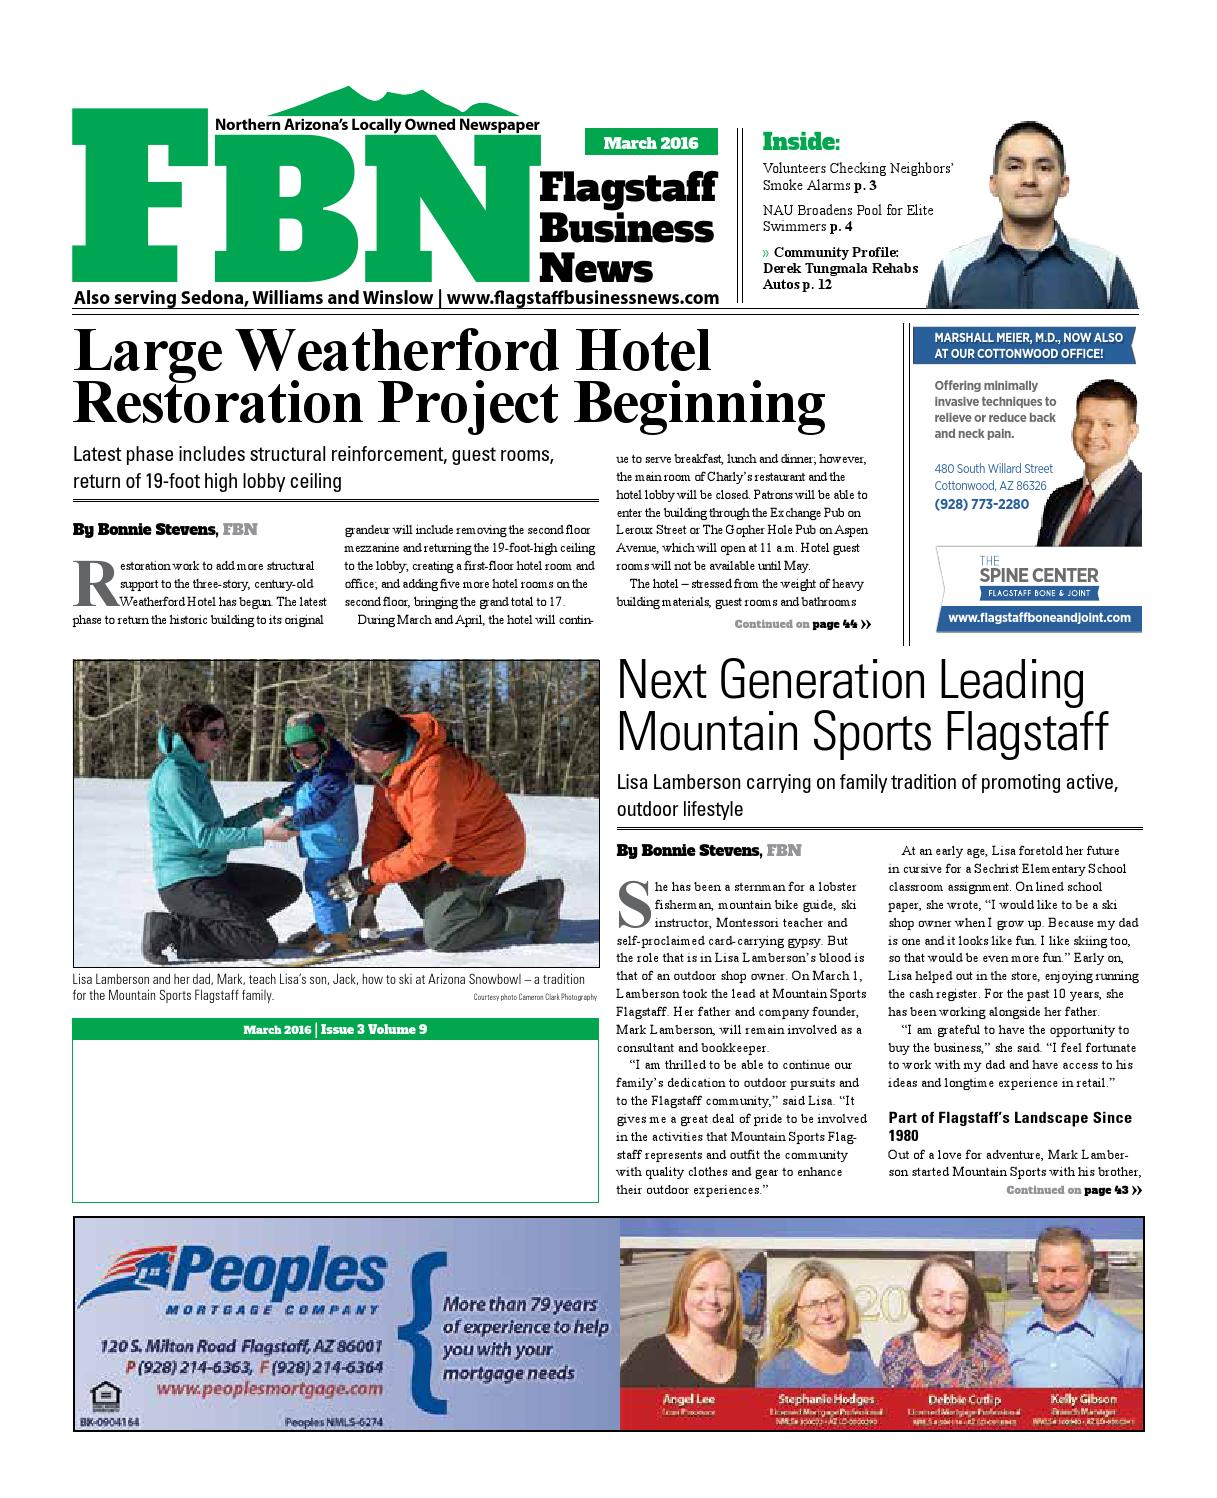 Alice Ferris Featured in Flagstaff Business News March 2016